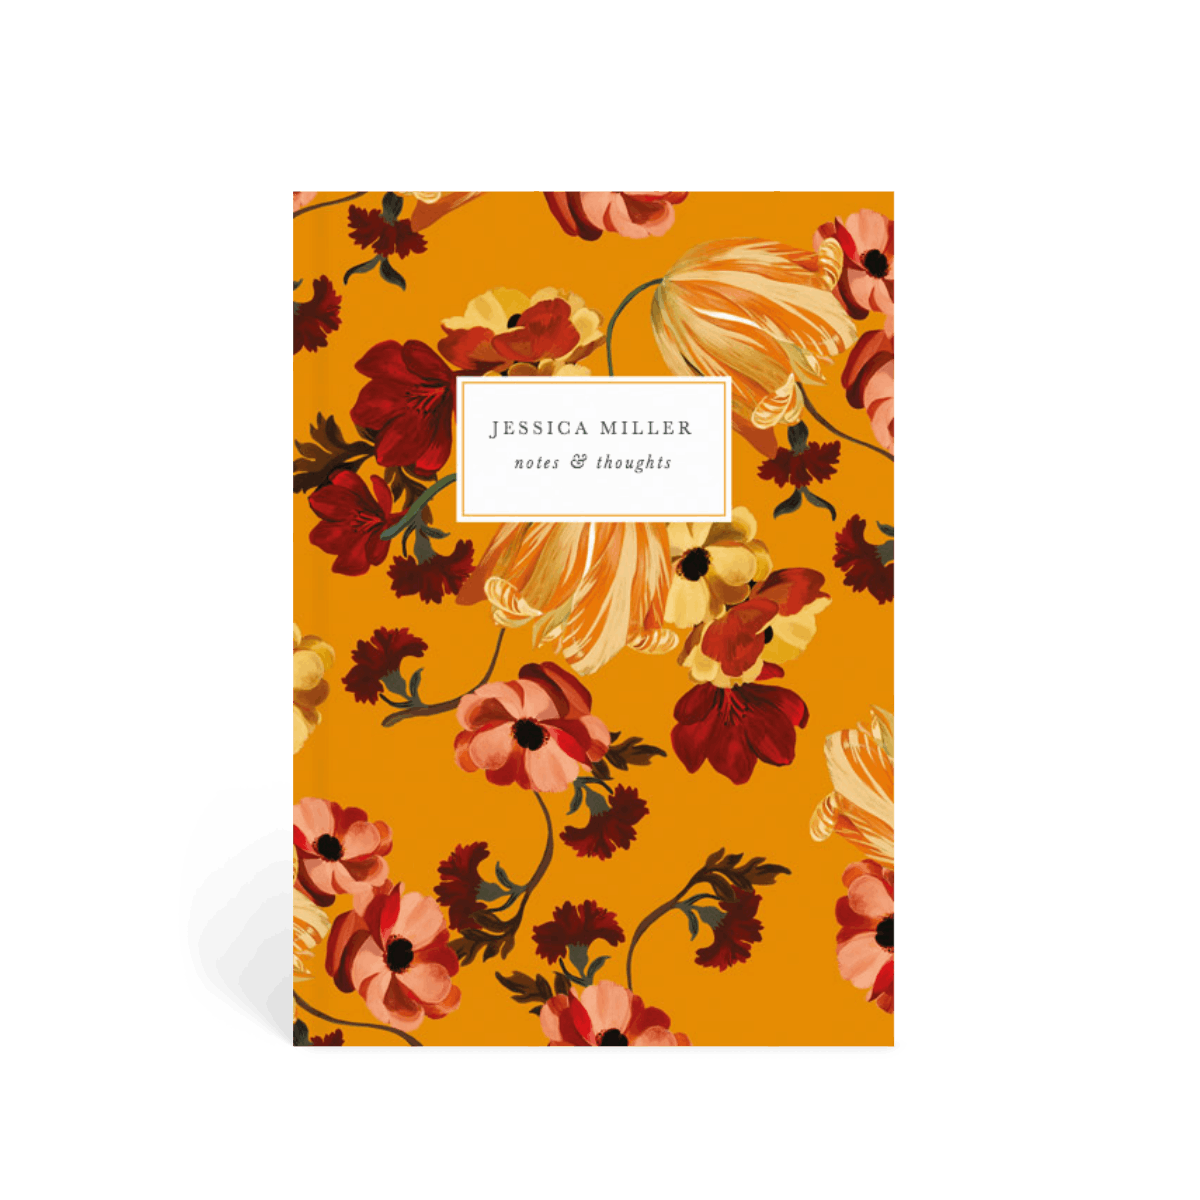 Https%3a%2f%2fwww.papier.com%2fproduct image%2f55481%2f25%2fautumn bloom 13328 front 1570269263.png?ixlib=rb 1.1